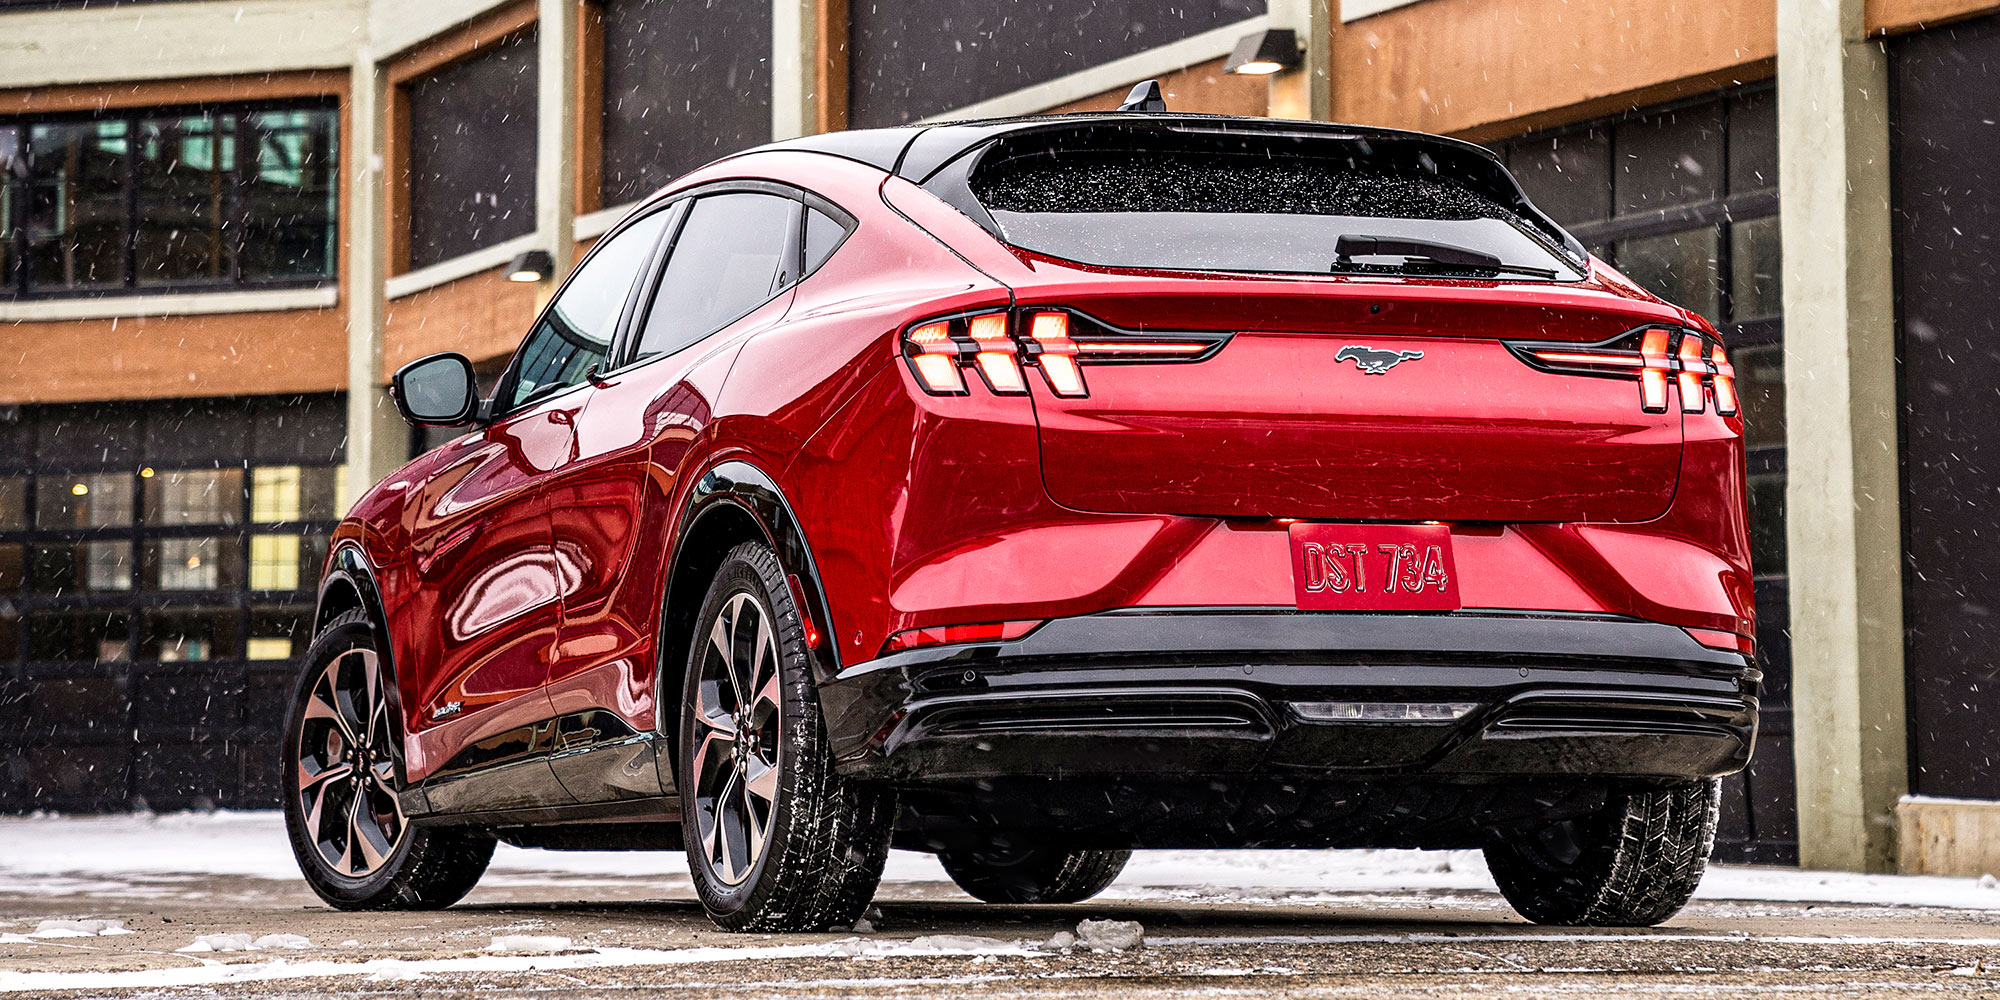 Exclusive: Ford plans contactless test drives of electric Mustang Mach-E